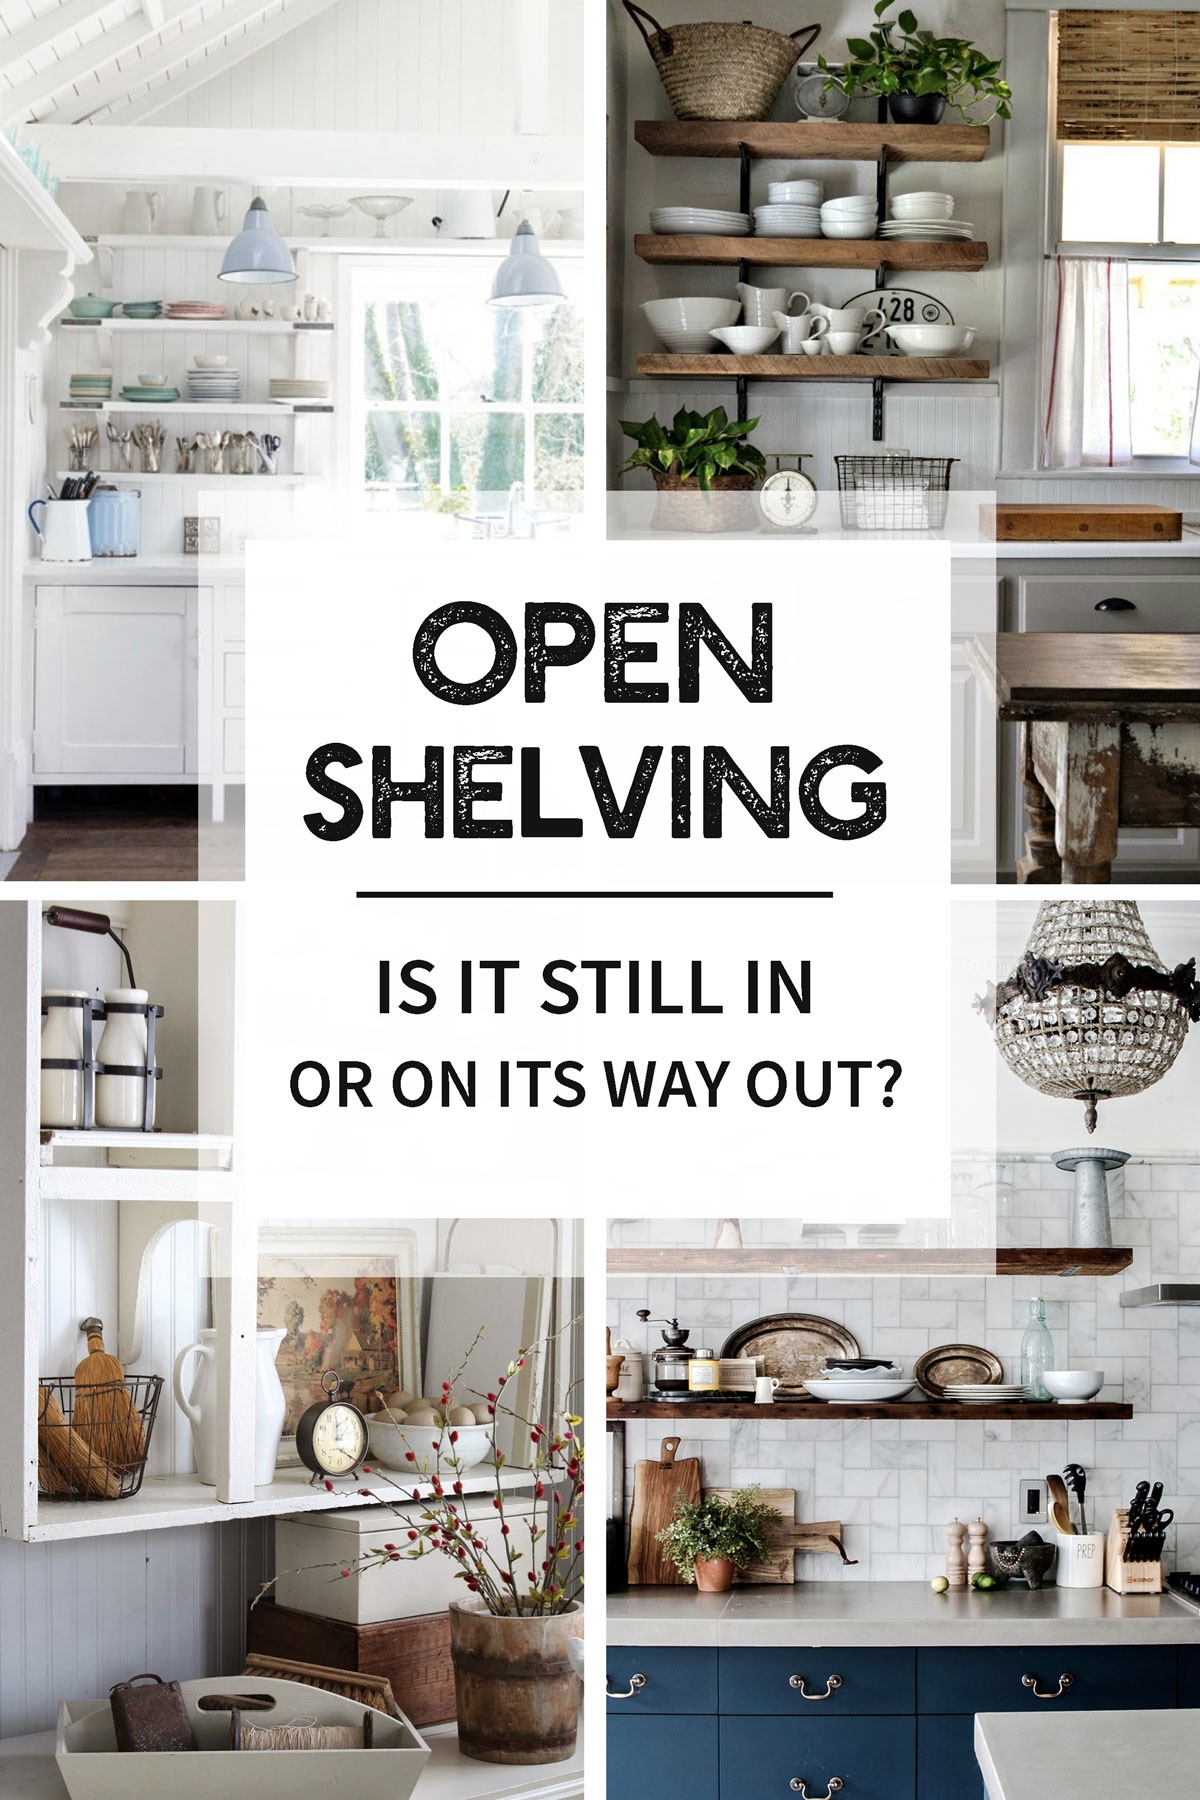 open shelving still its way out tidbits depth floating kitchen shelves corner system bathroom for small spaces utility tall unit with drawers solid brass shelf brackets wall